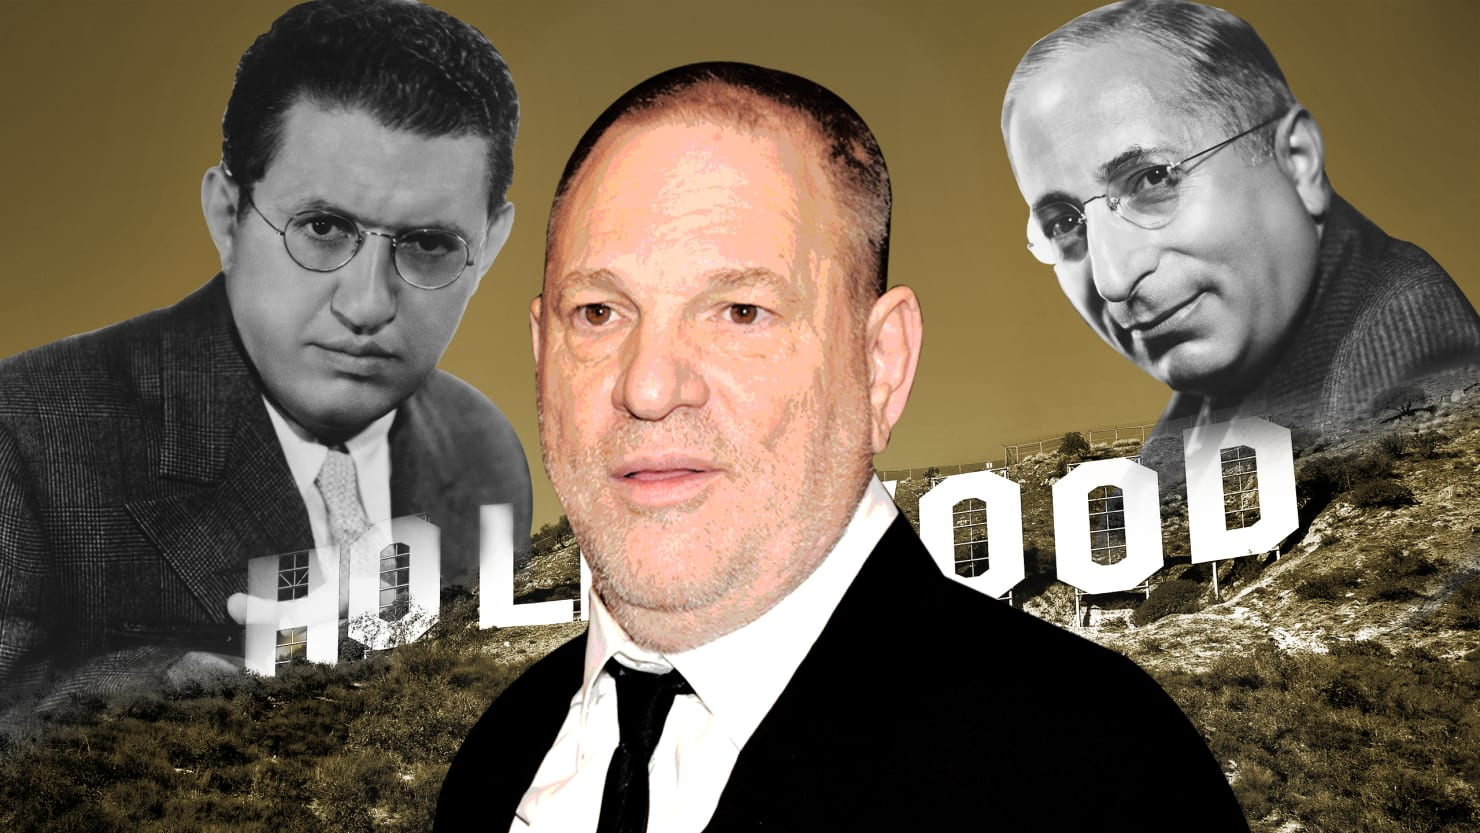 Hollywood's Heinous 'Casting Couch' Culture That Enabled Harvey Weinstein